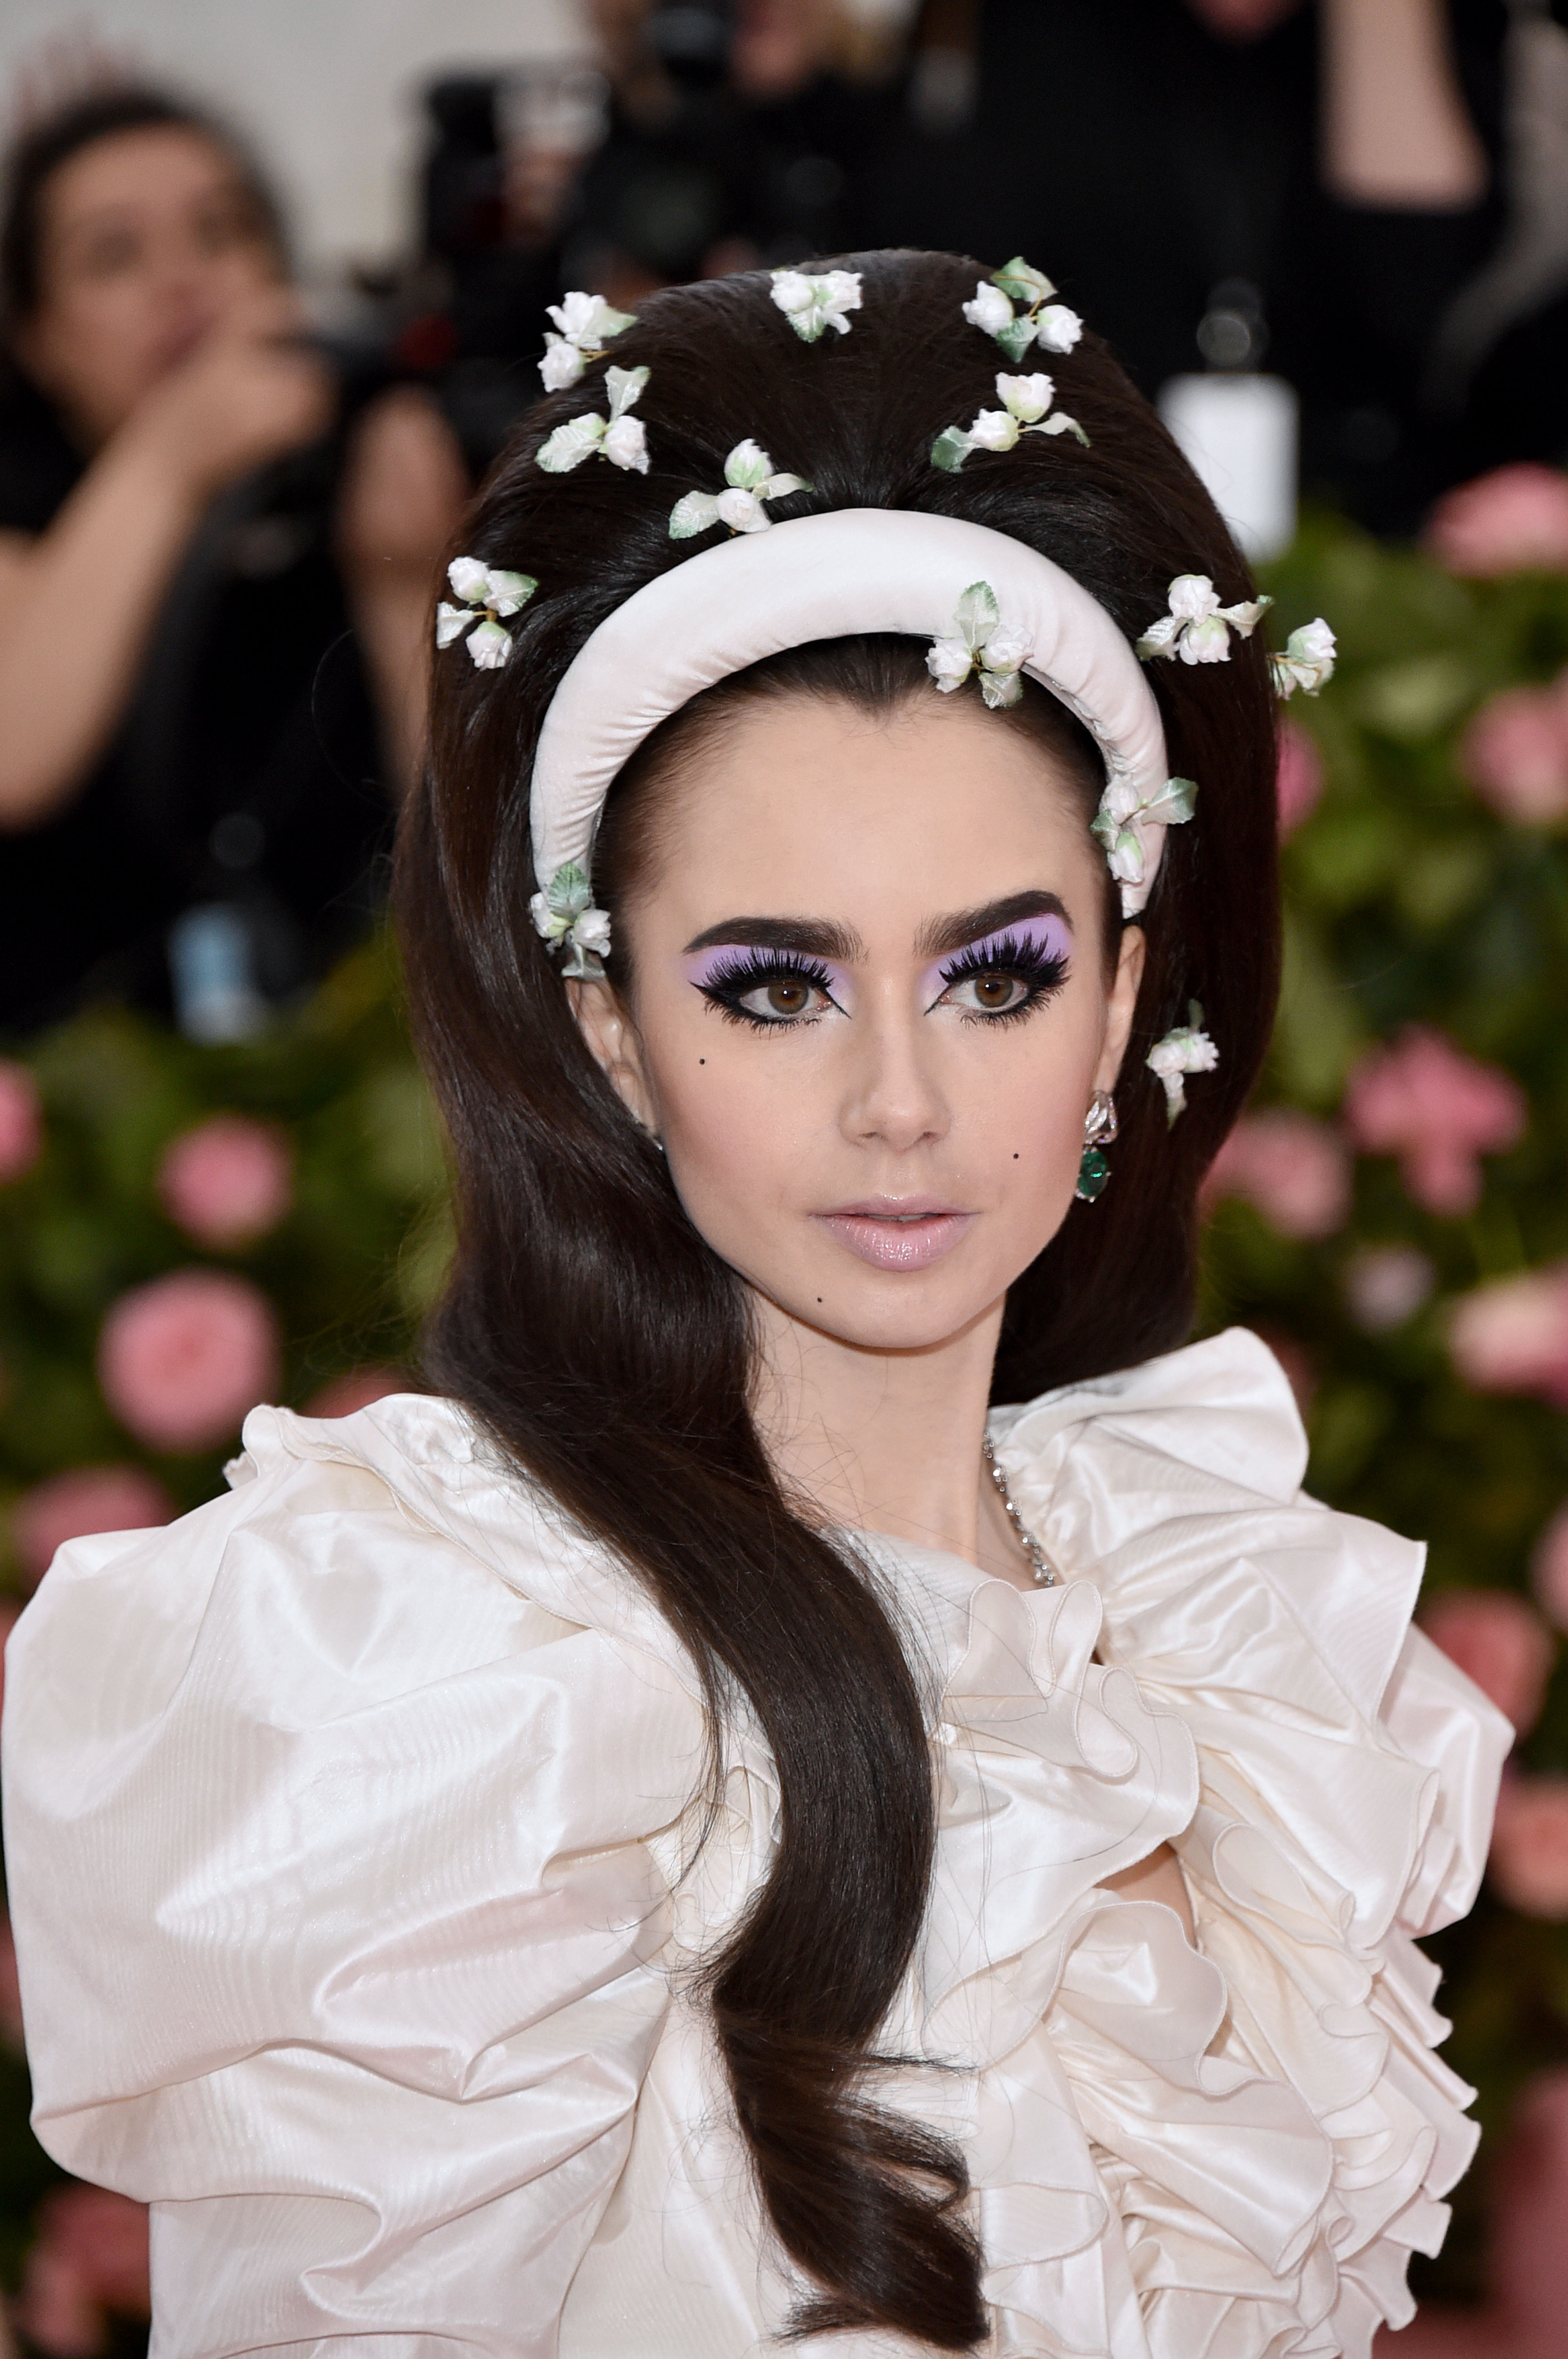 Extremely long, crazy eyelashes were the boldest beauty trend at the 2019 Met Gala